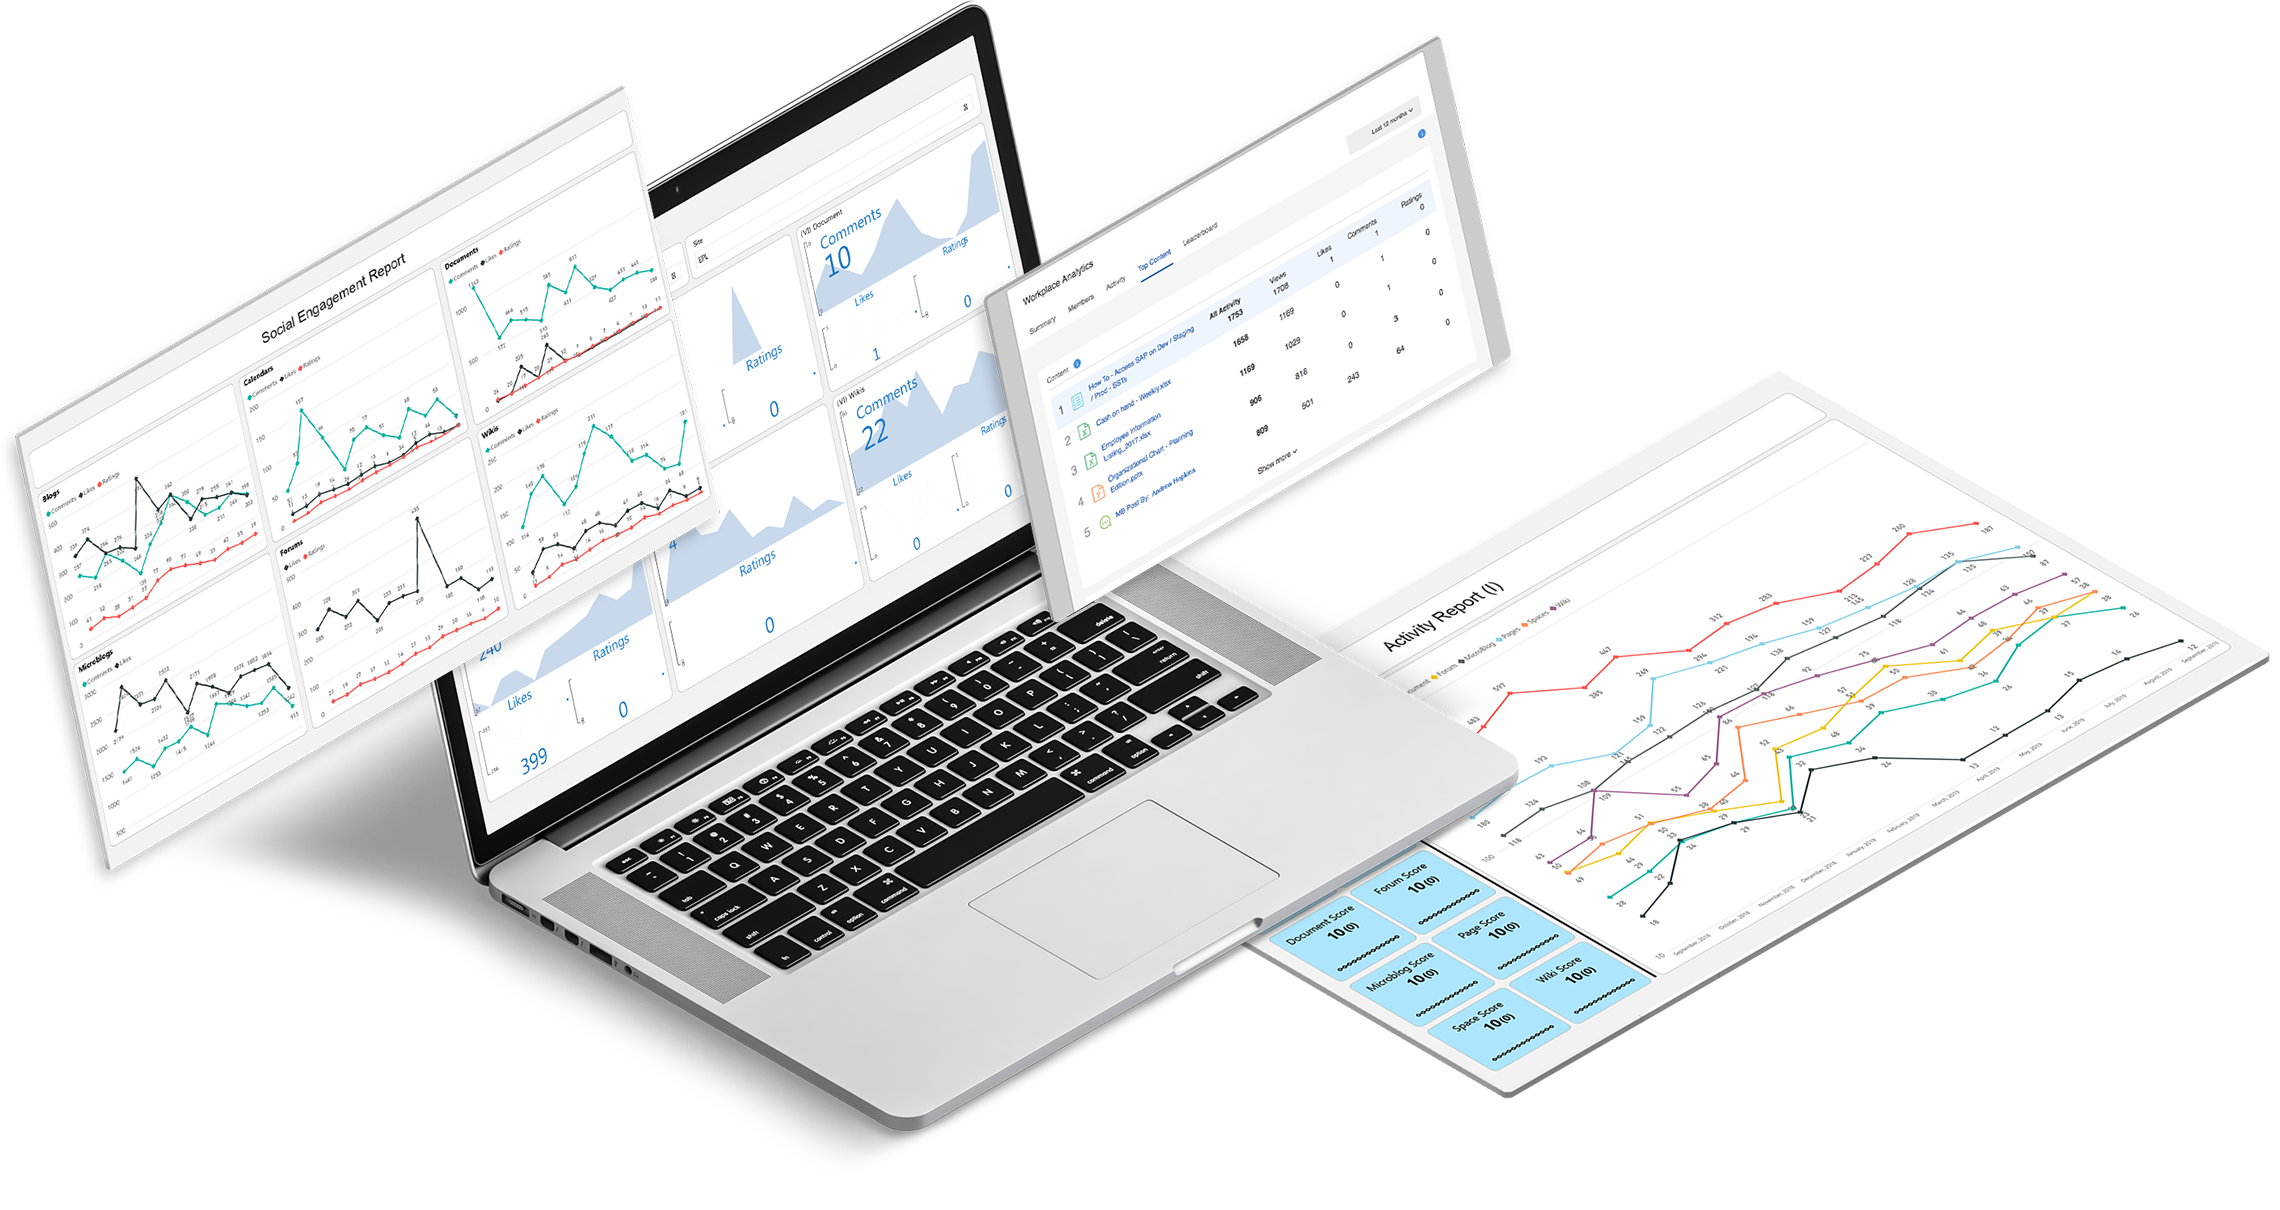 laptop and screens of data and reports